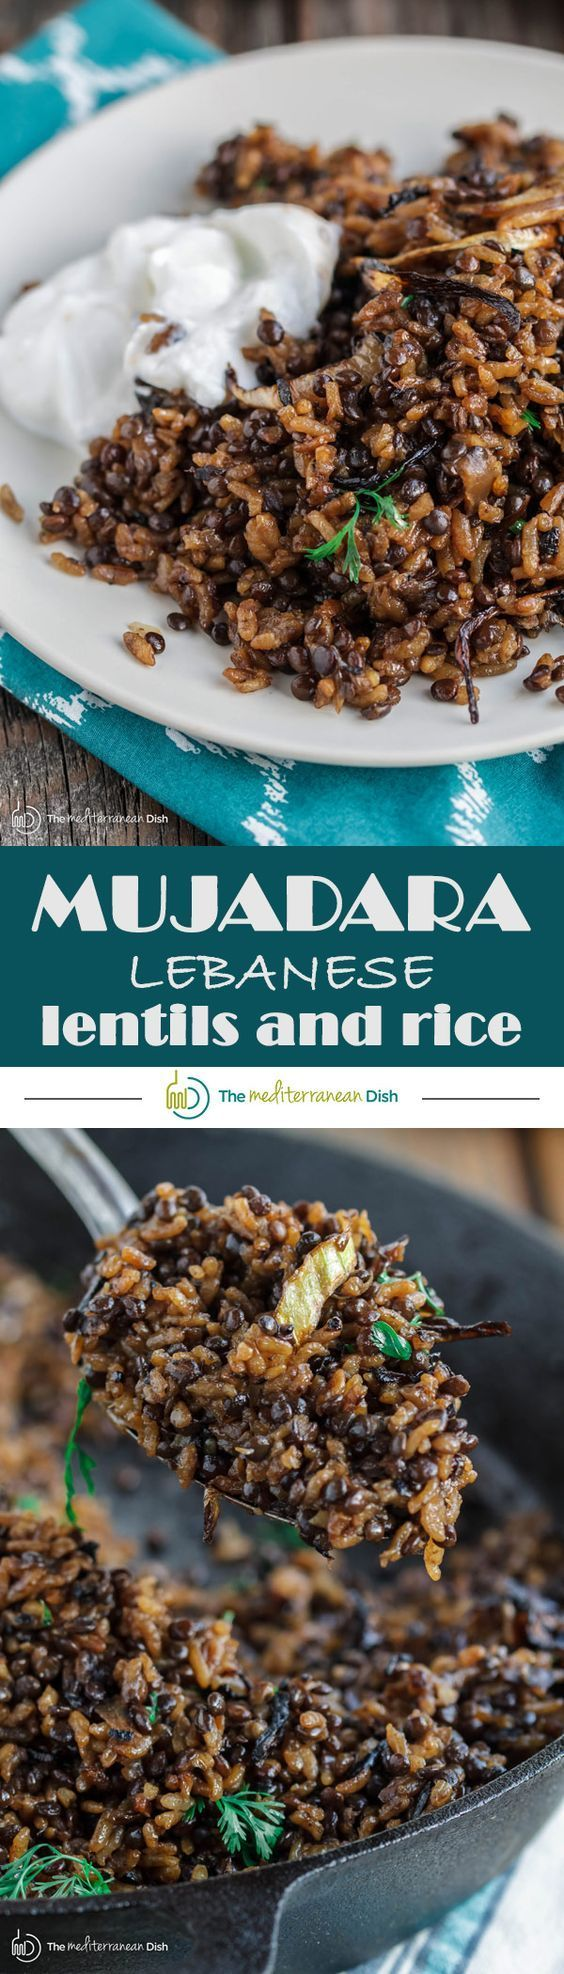 261 best Rice Recipes images on Pinterest | Chinese food recipes ...